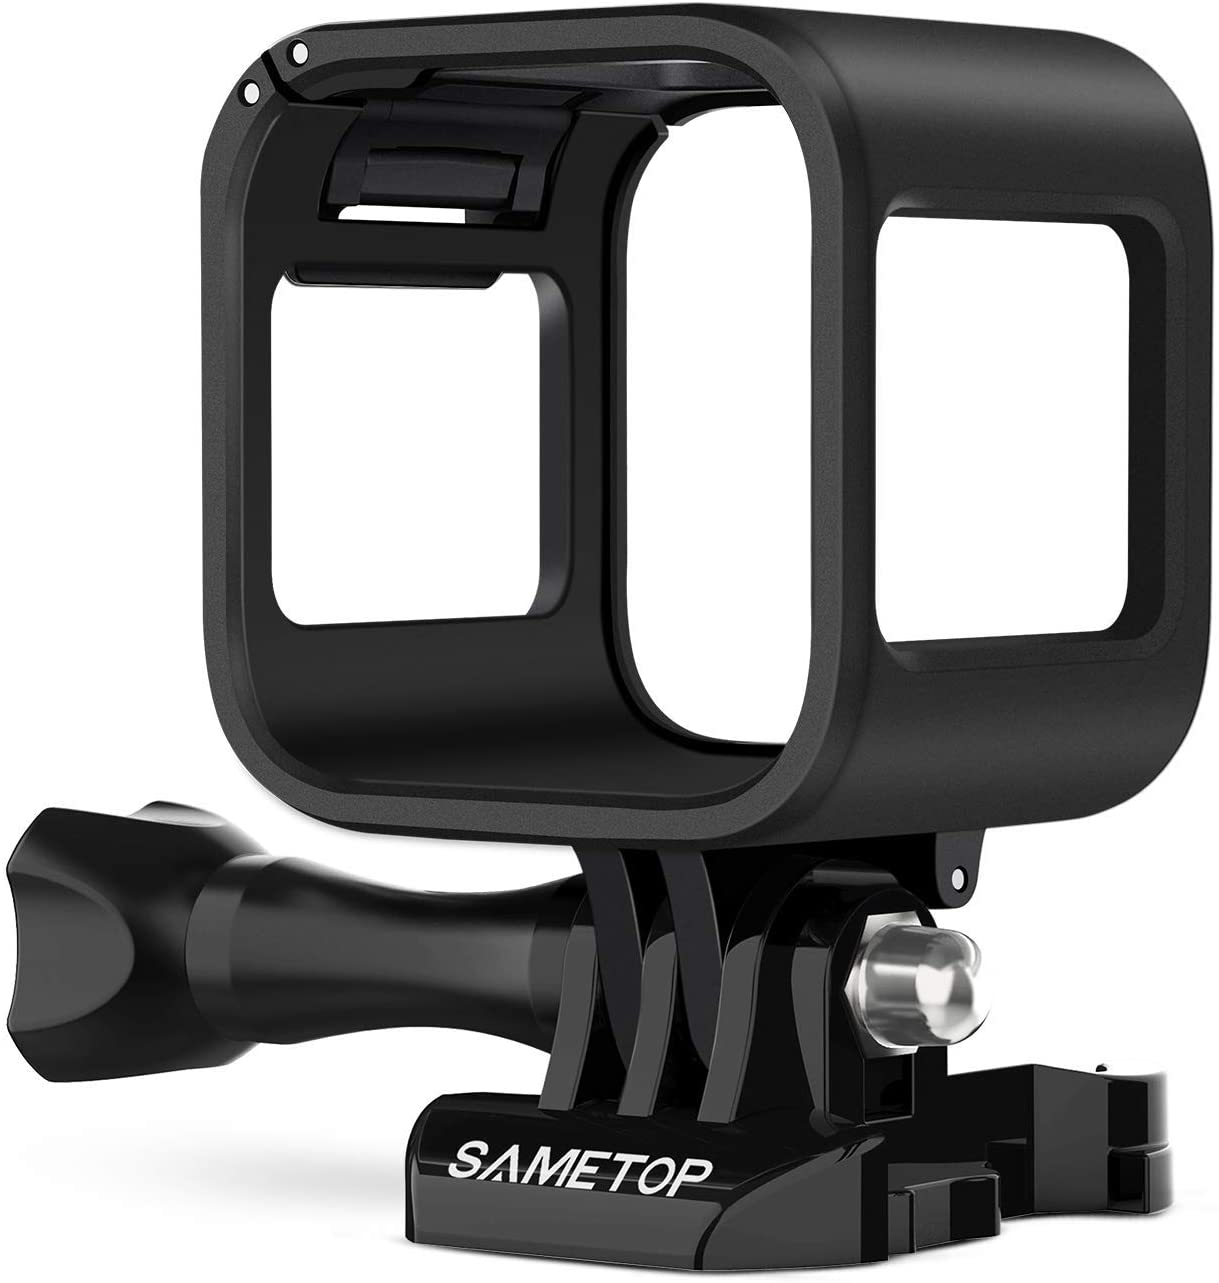 Sametop Carcasa Para Cámaras Gopro Hero 5 Session Hero 4 Session Hero Session Camera Photo